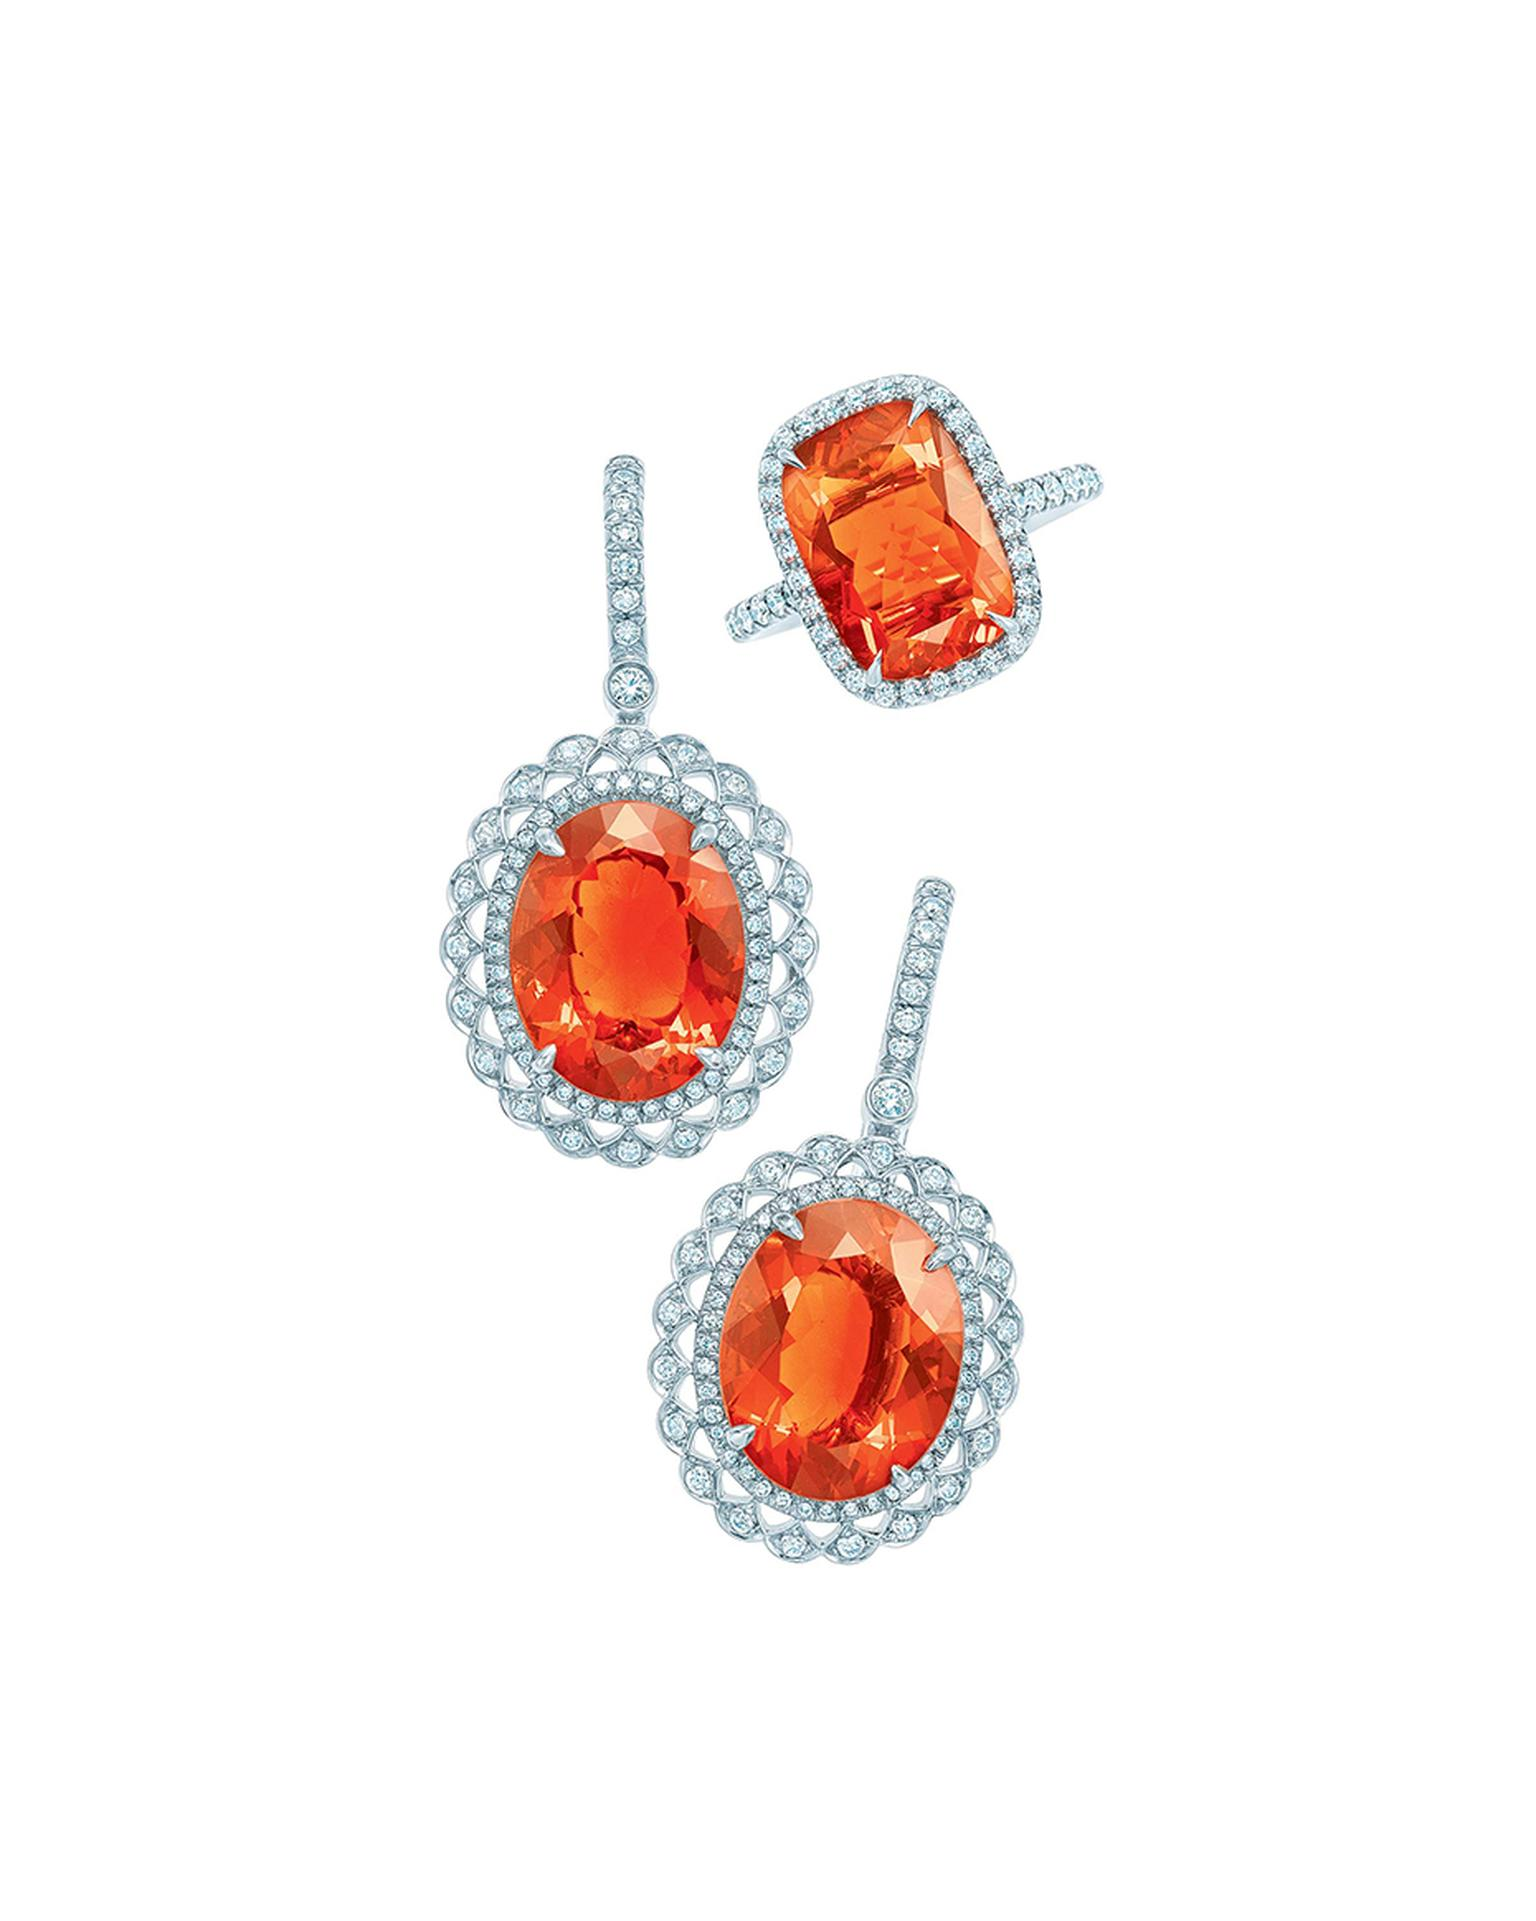 Tiffany & Co. Blue Book Collection fire opal earrings and ring with diamonds set in platinum.